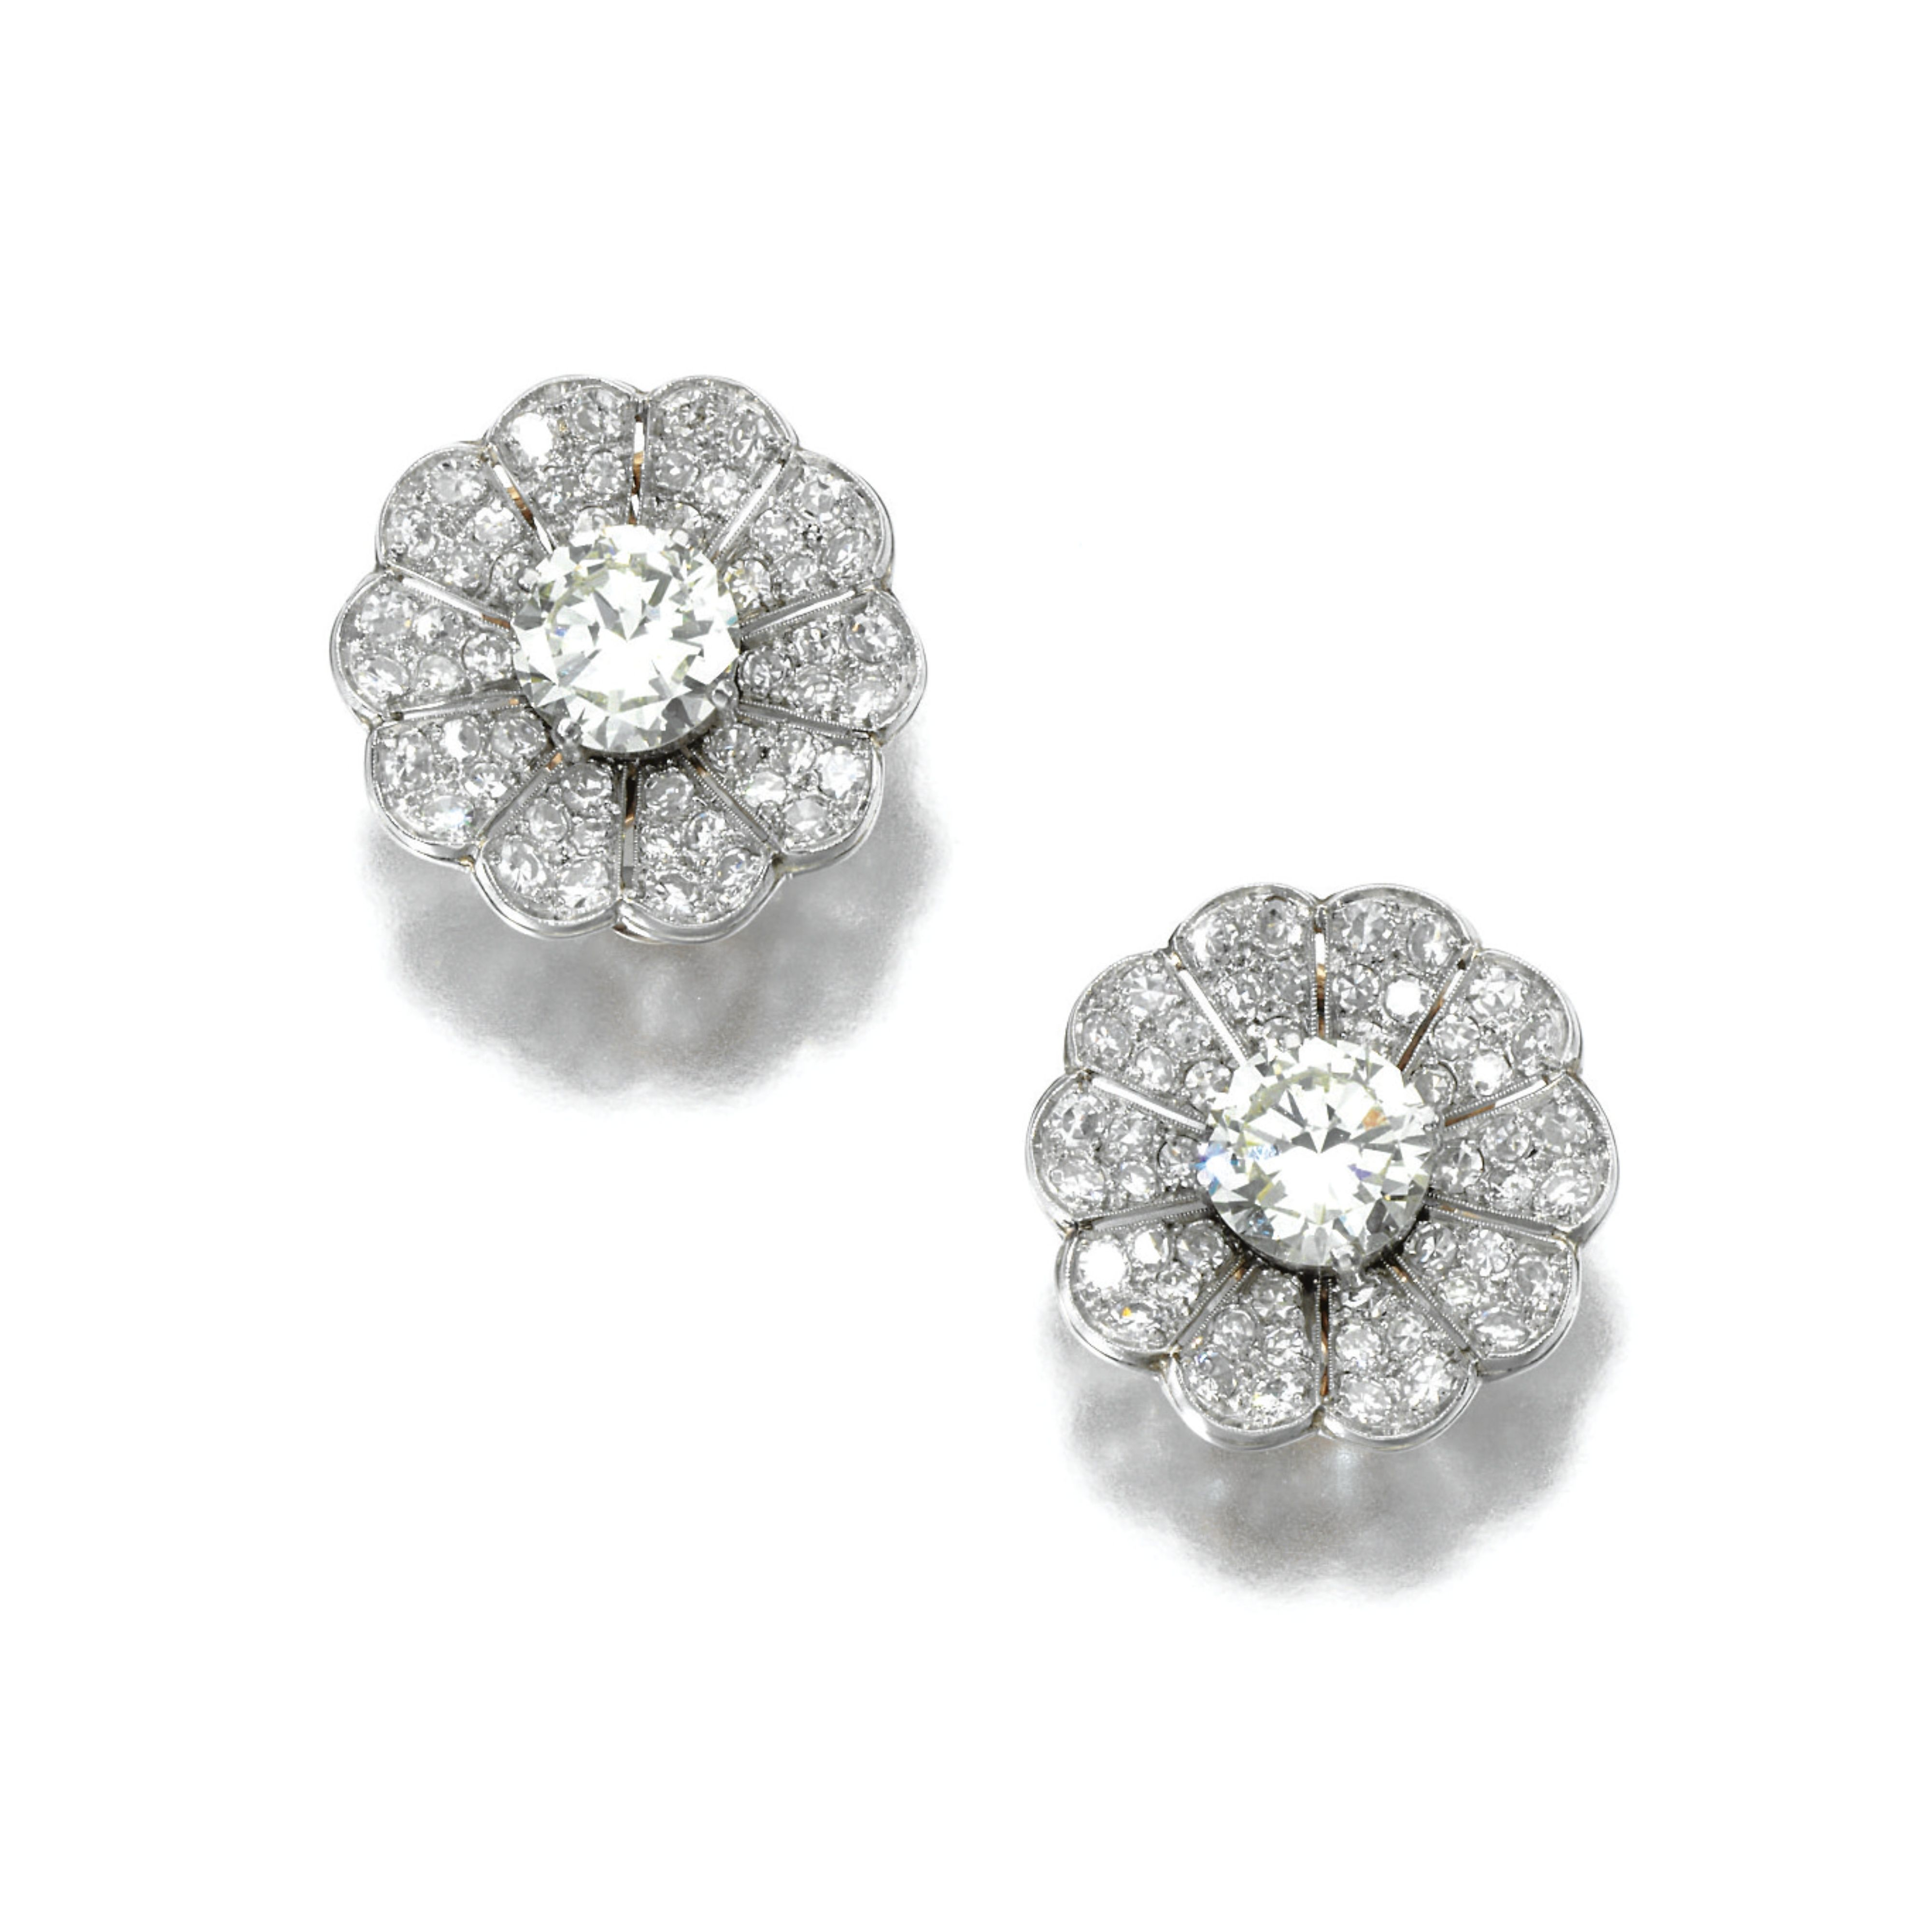 PAIR OF DIAMOND EAR CLIPS  Each designed as a stylised flower, set at the centre with a brilliant-cut diamond, the petals pavé-set with si...